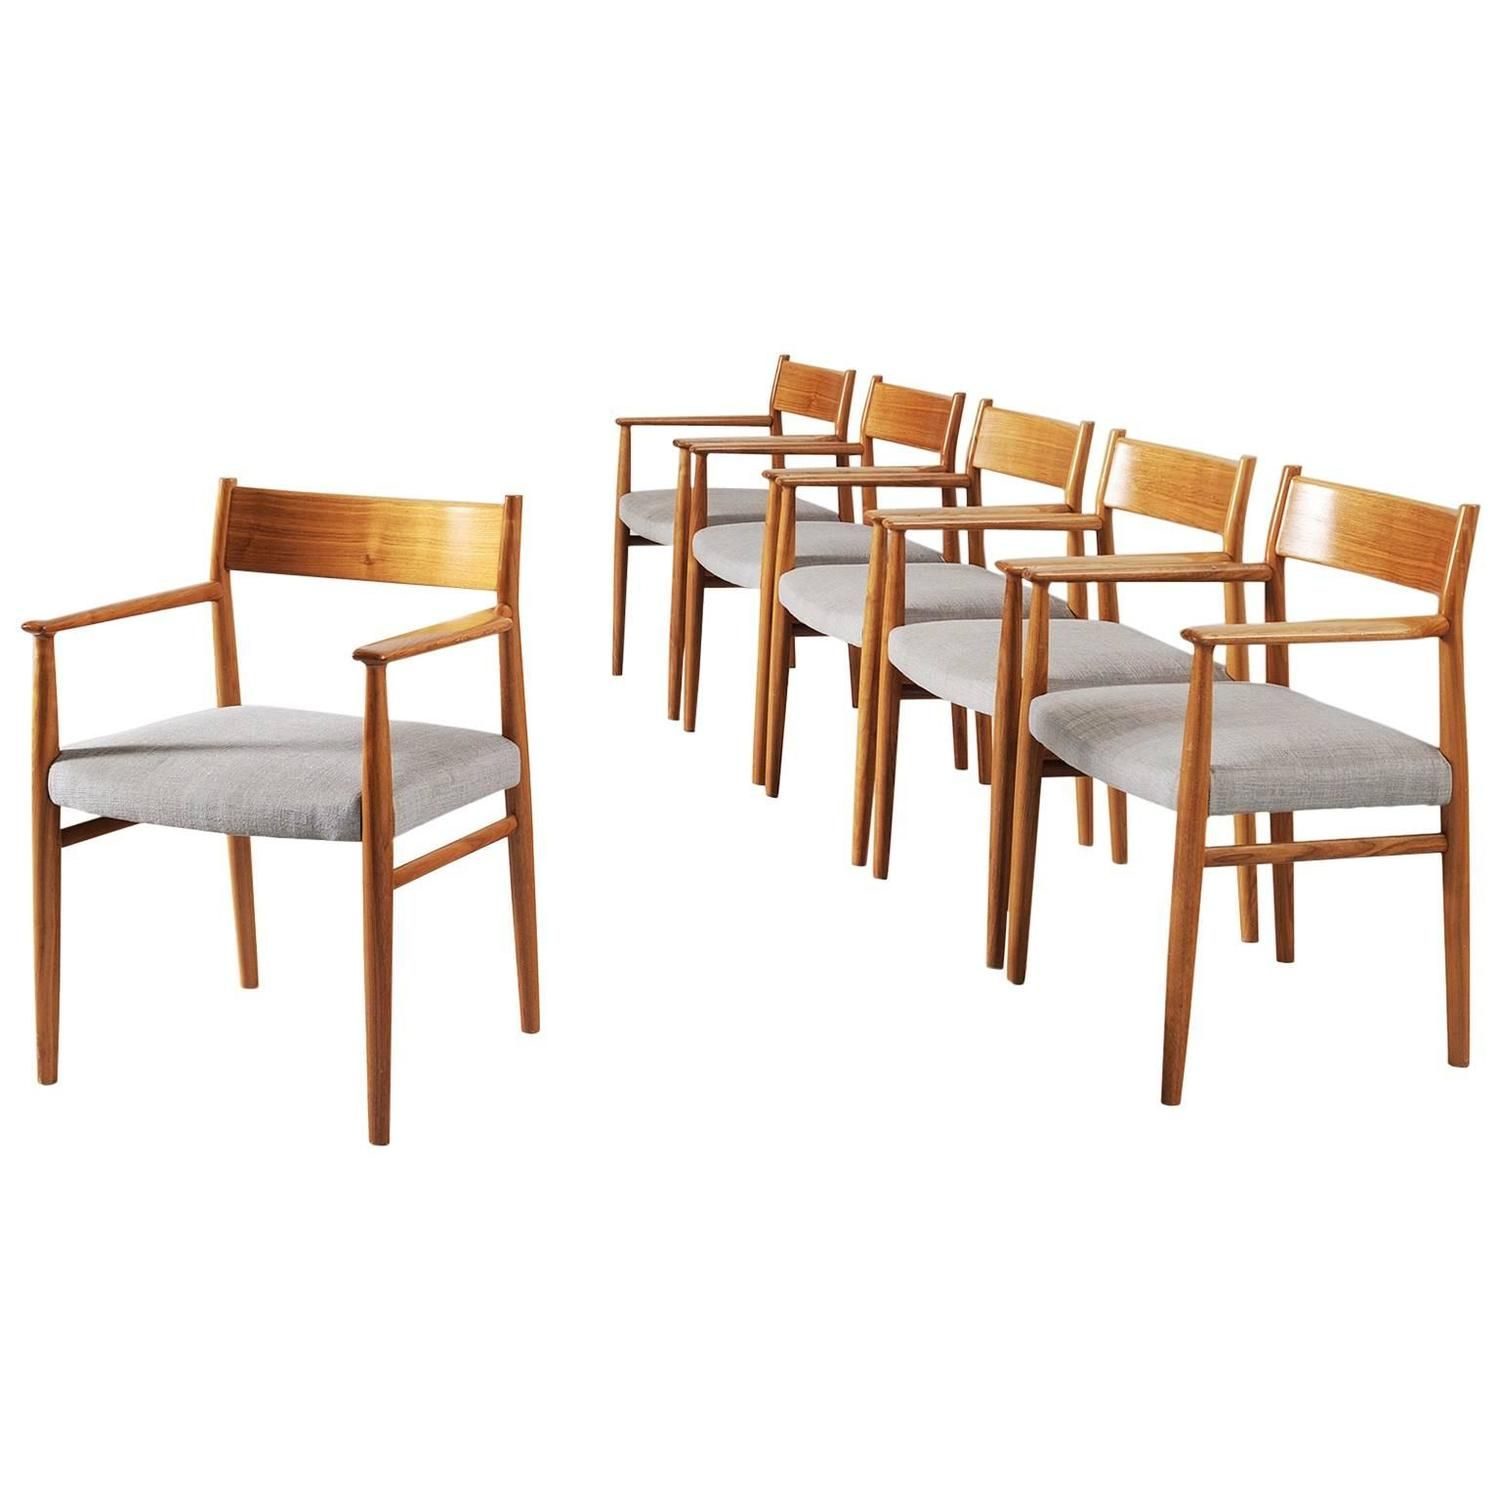 arne vodder set of six dining chairs in walnut - Set Of Six Dining Room Chairs